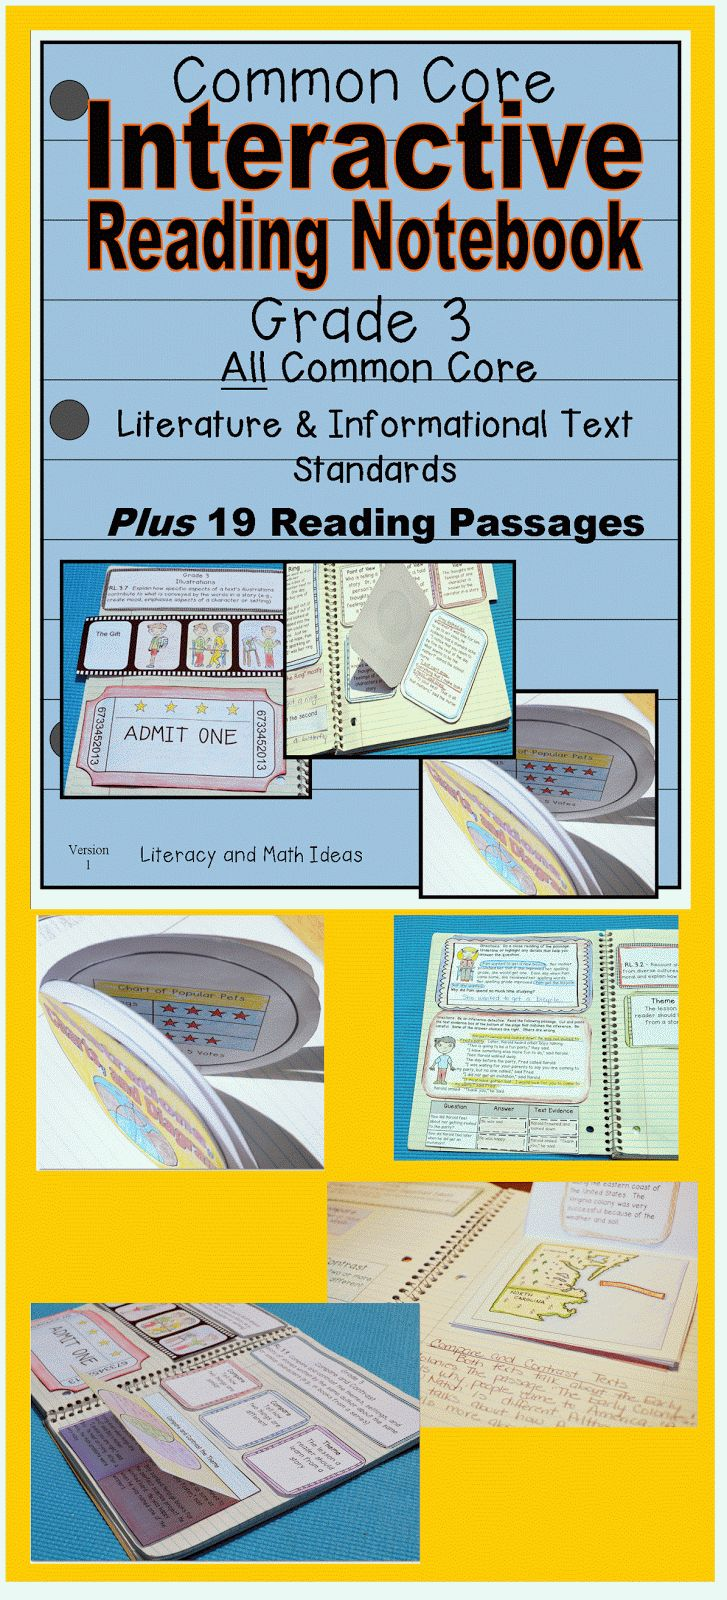 7 best school images on Pinterest | Reading, Interactive notebooks ...